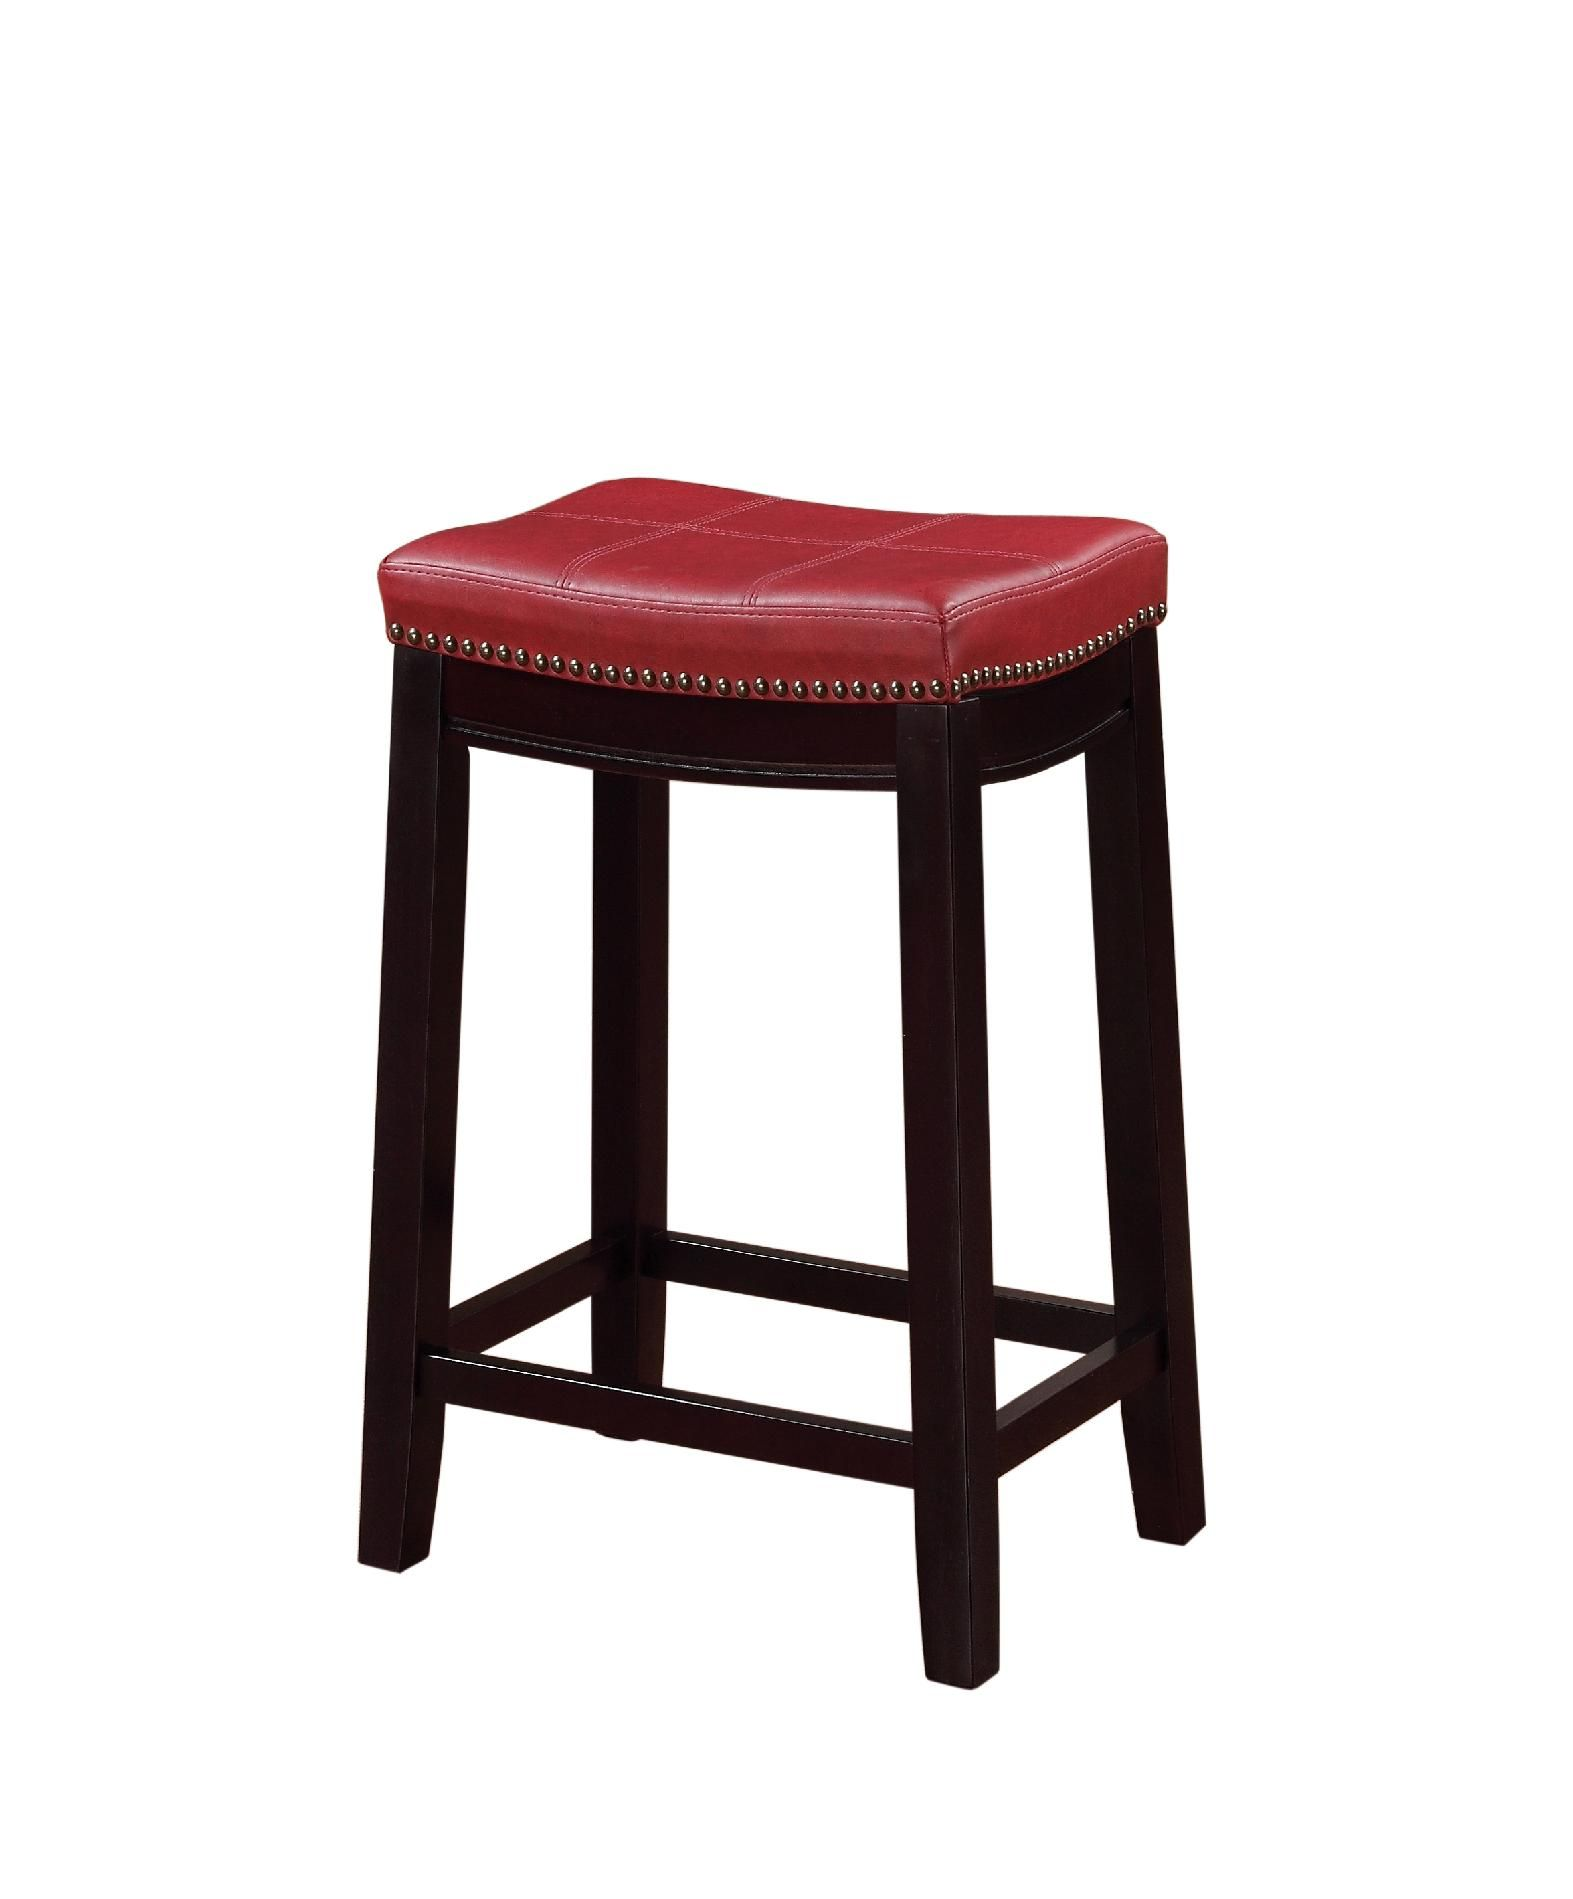 Pleasing Linon Claridge Red Counter Stool Brown Products Bar Andrewgaddart Wooden Chair Designs For Living Room Andrewgaddartcom